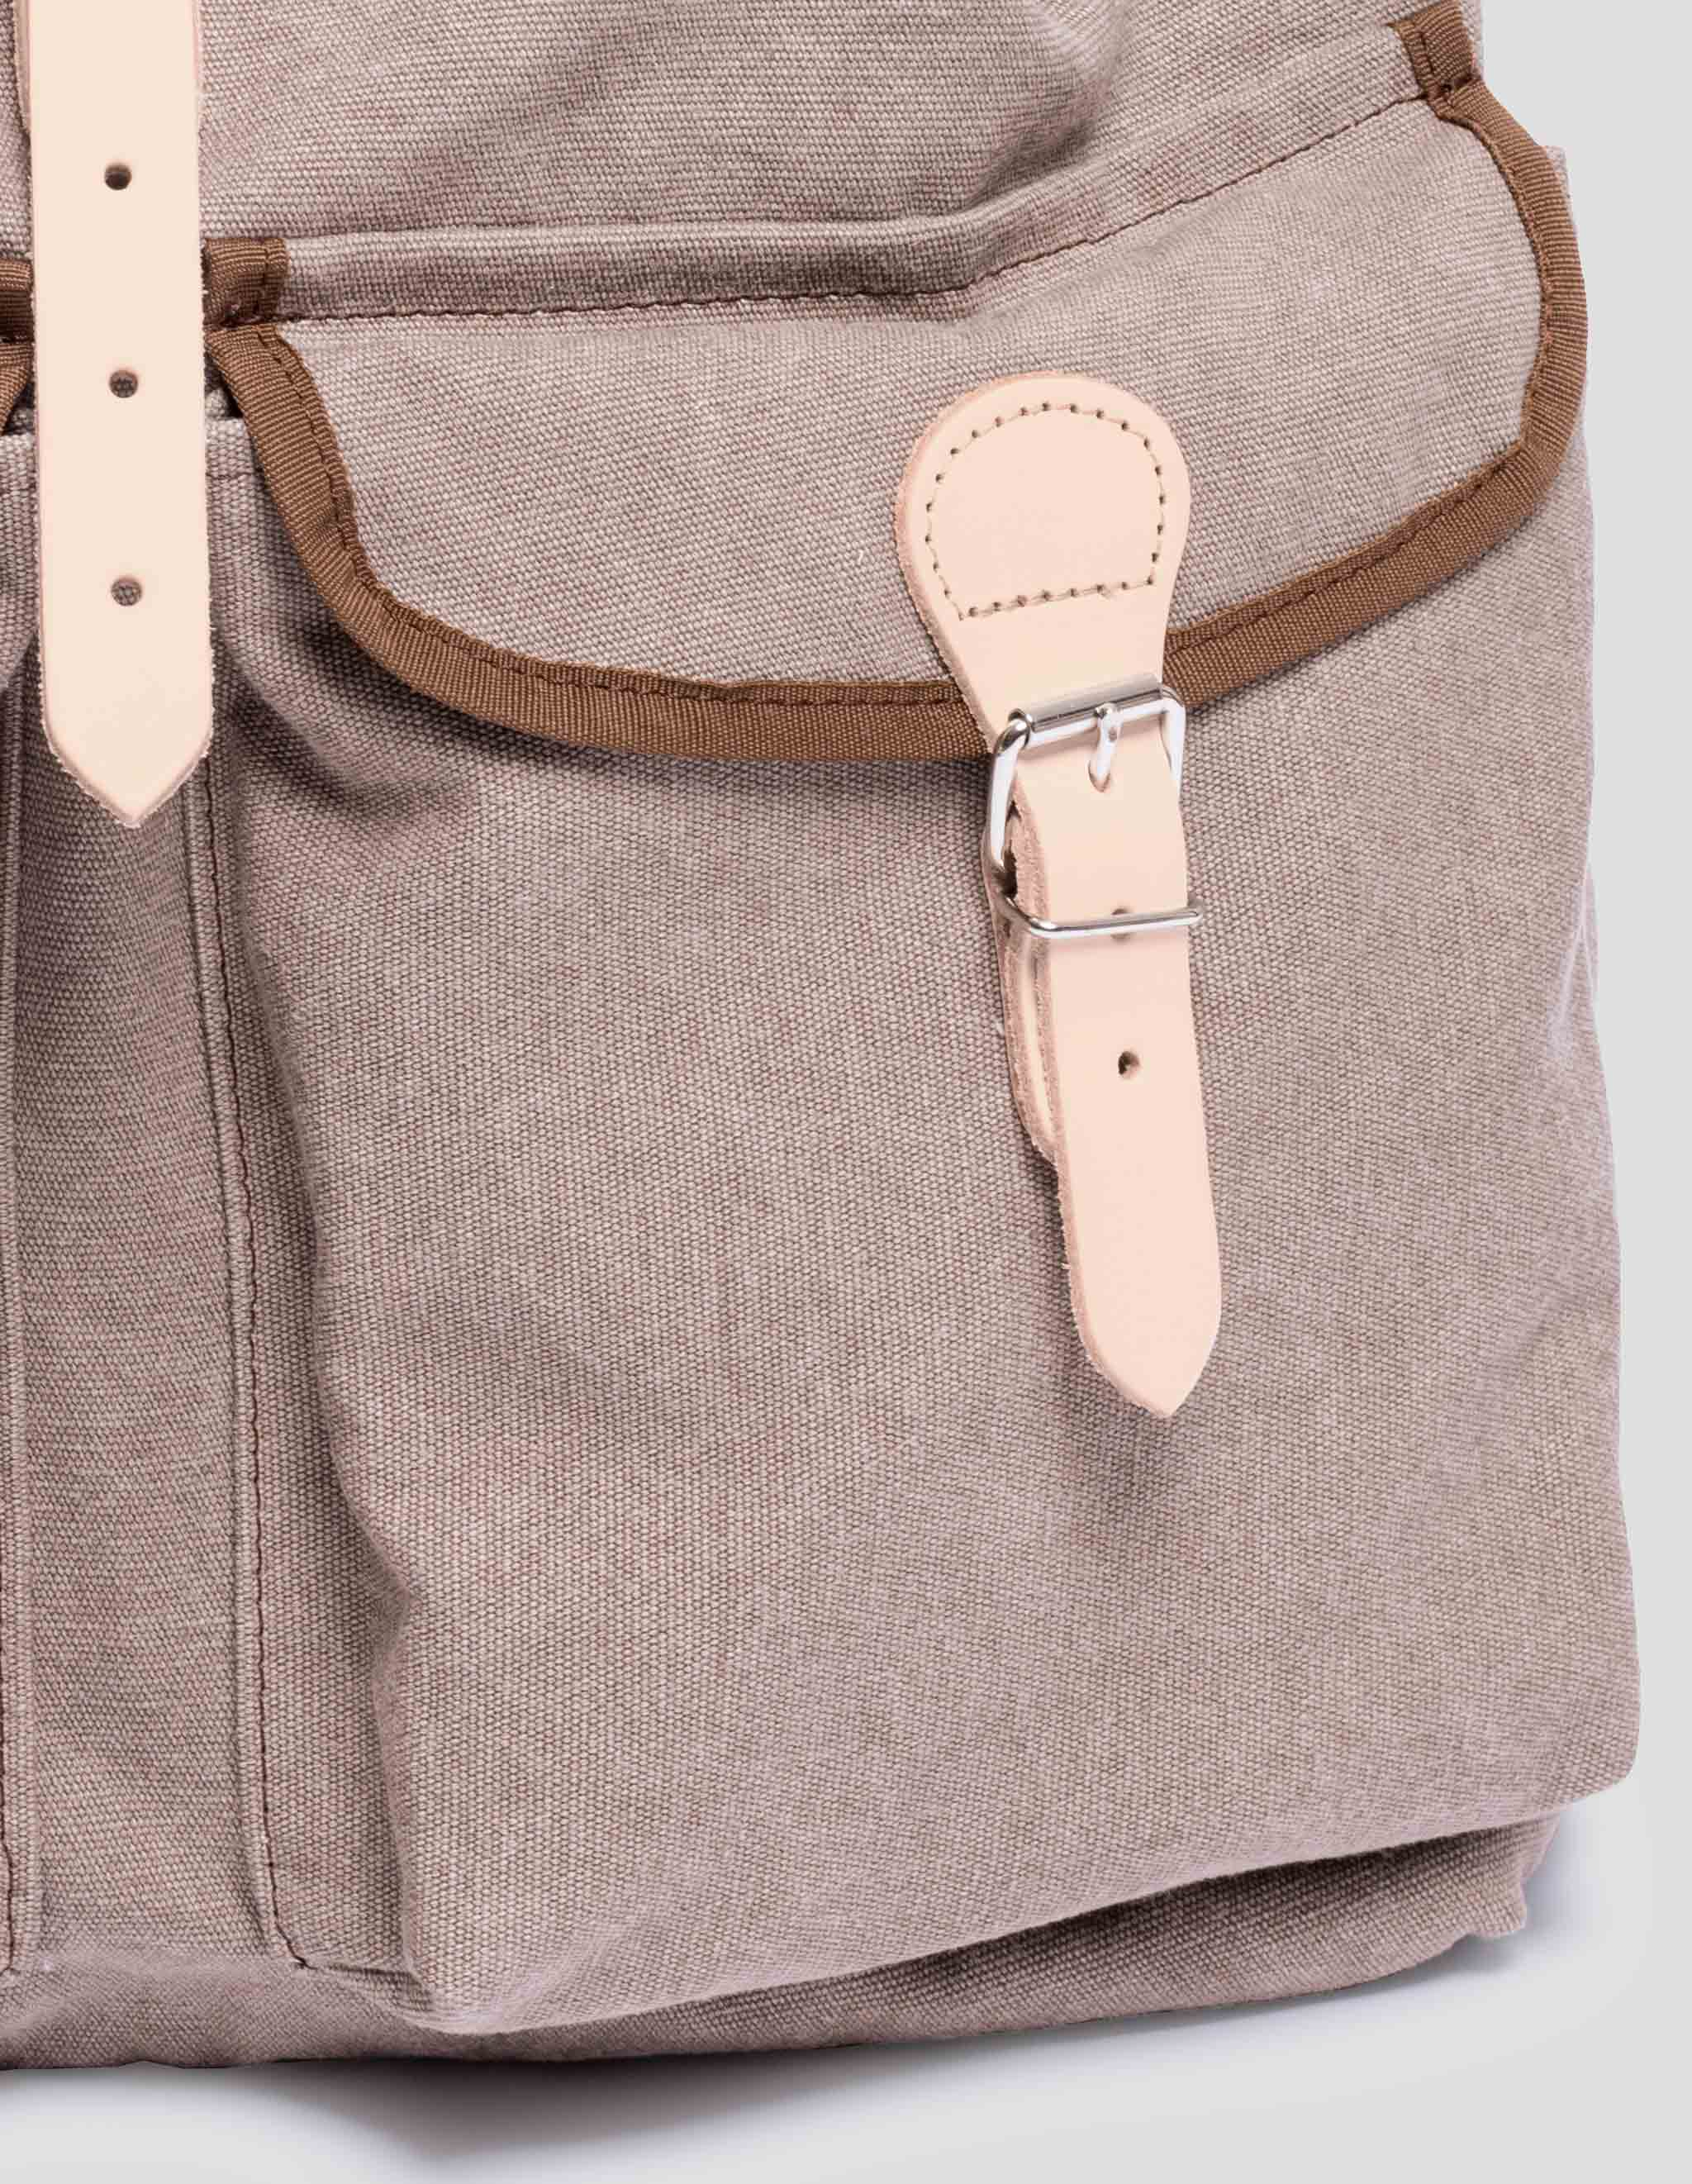 Detail Handgefertigter Rucksack Brown aus Cotton Canvas